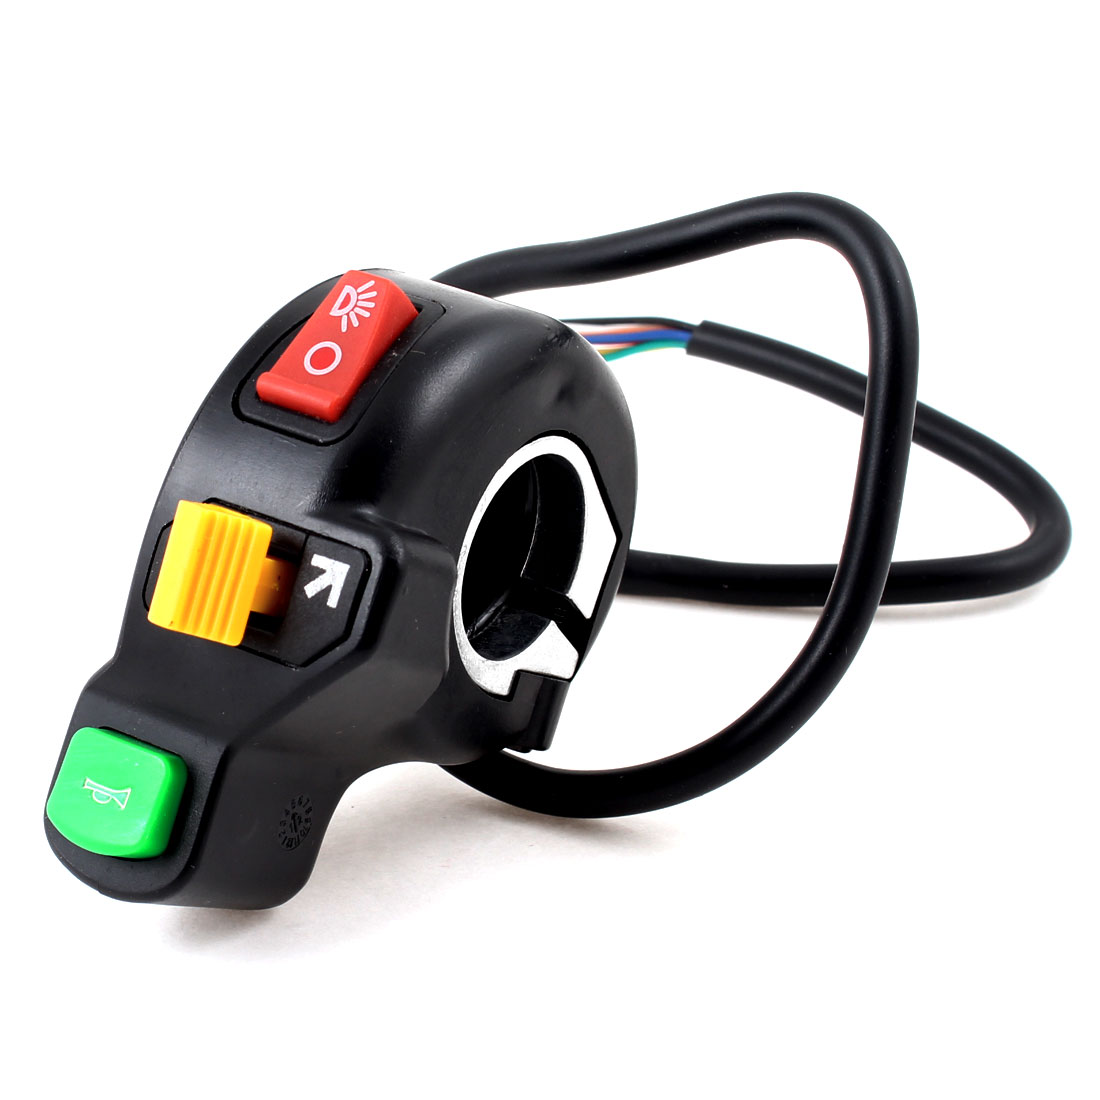 Head Light Horn Turn Signal Switch for Electric Bike Bicycle Scooter